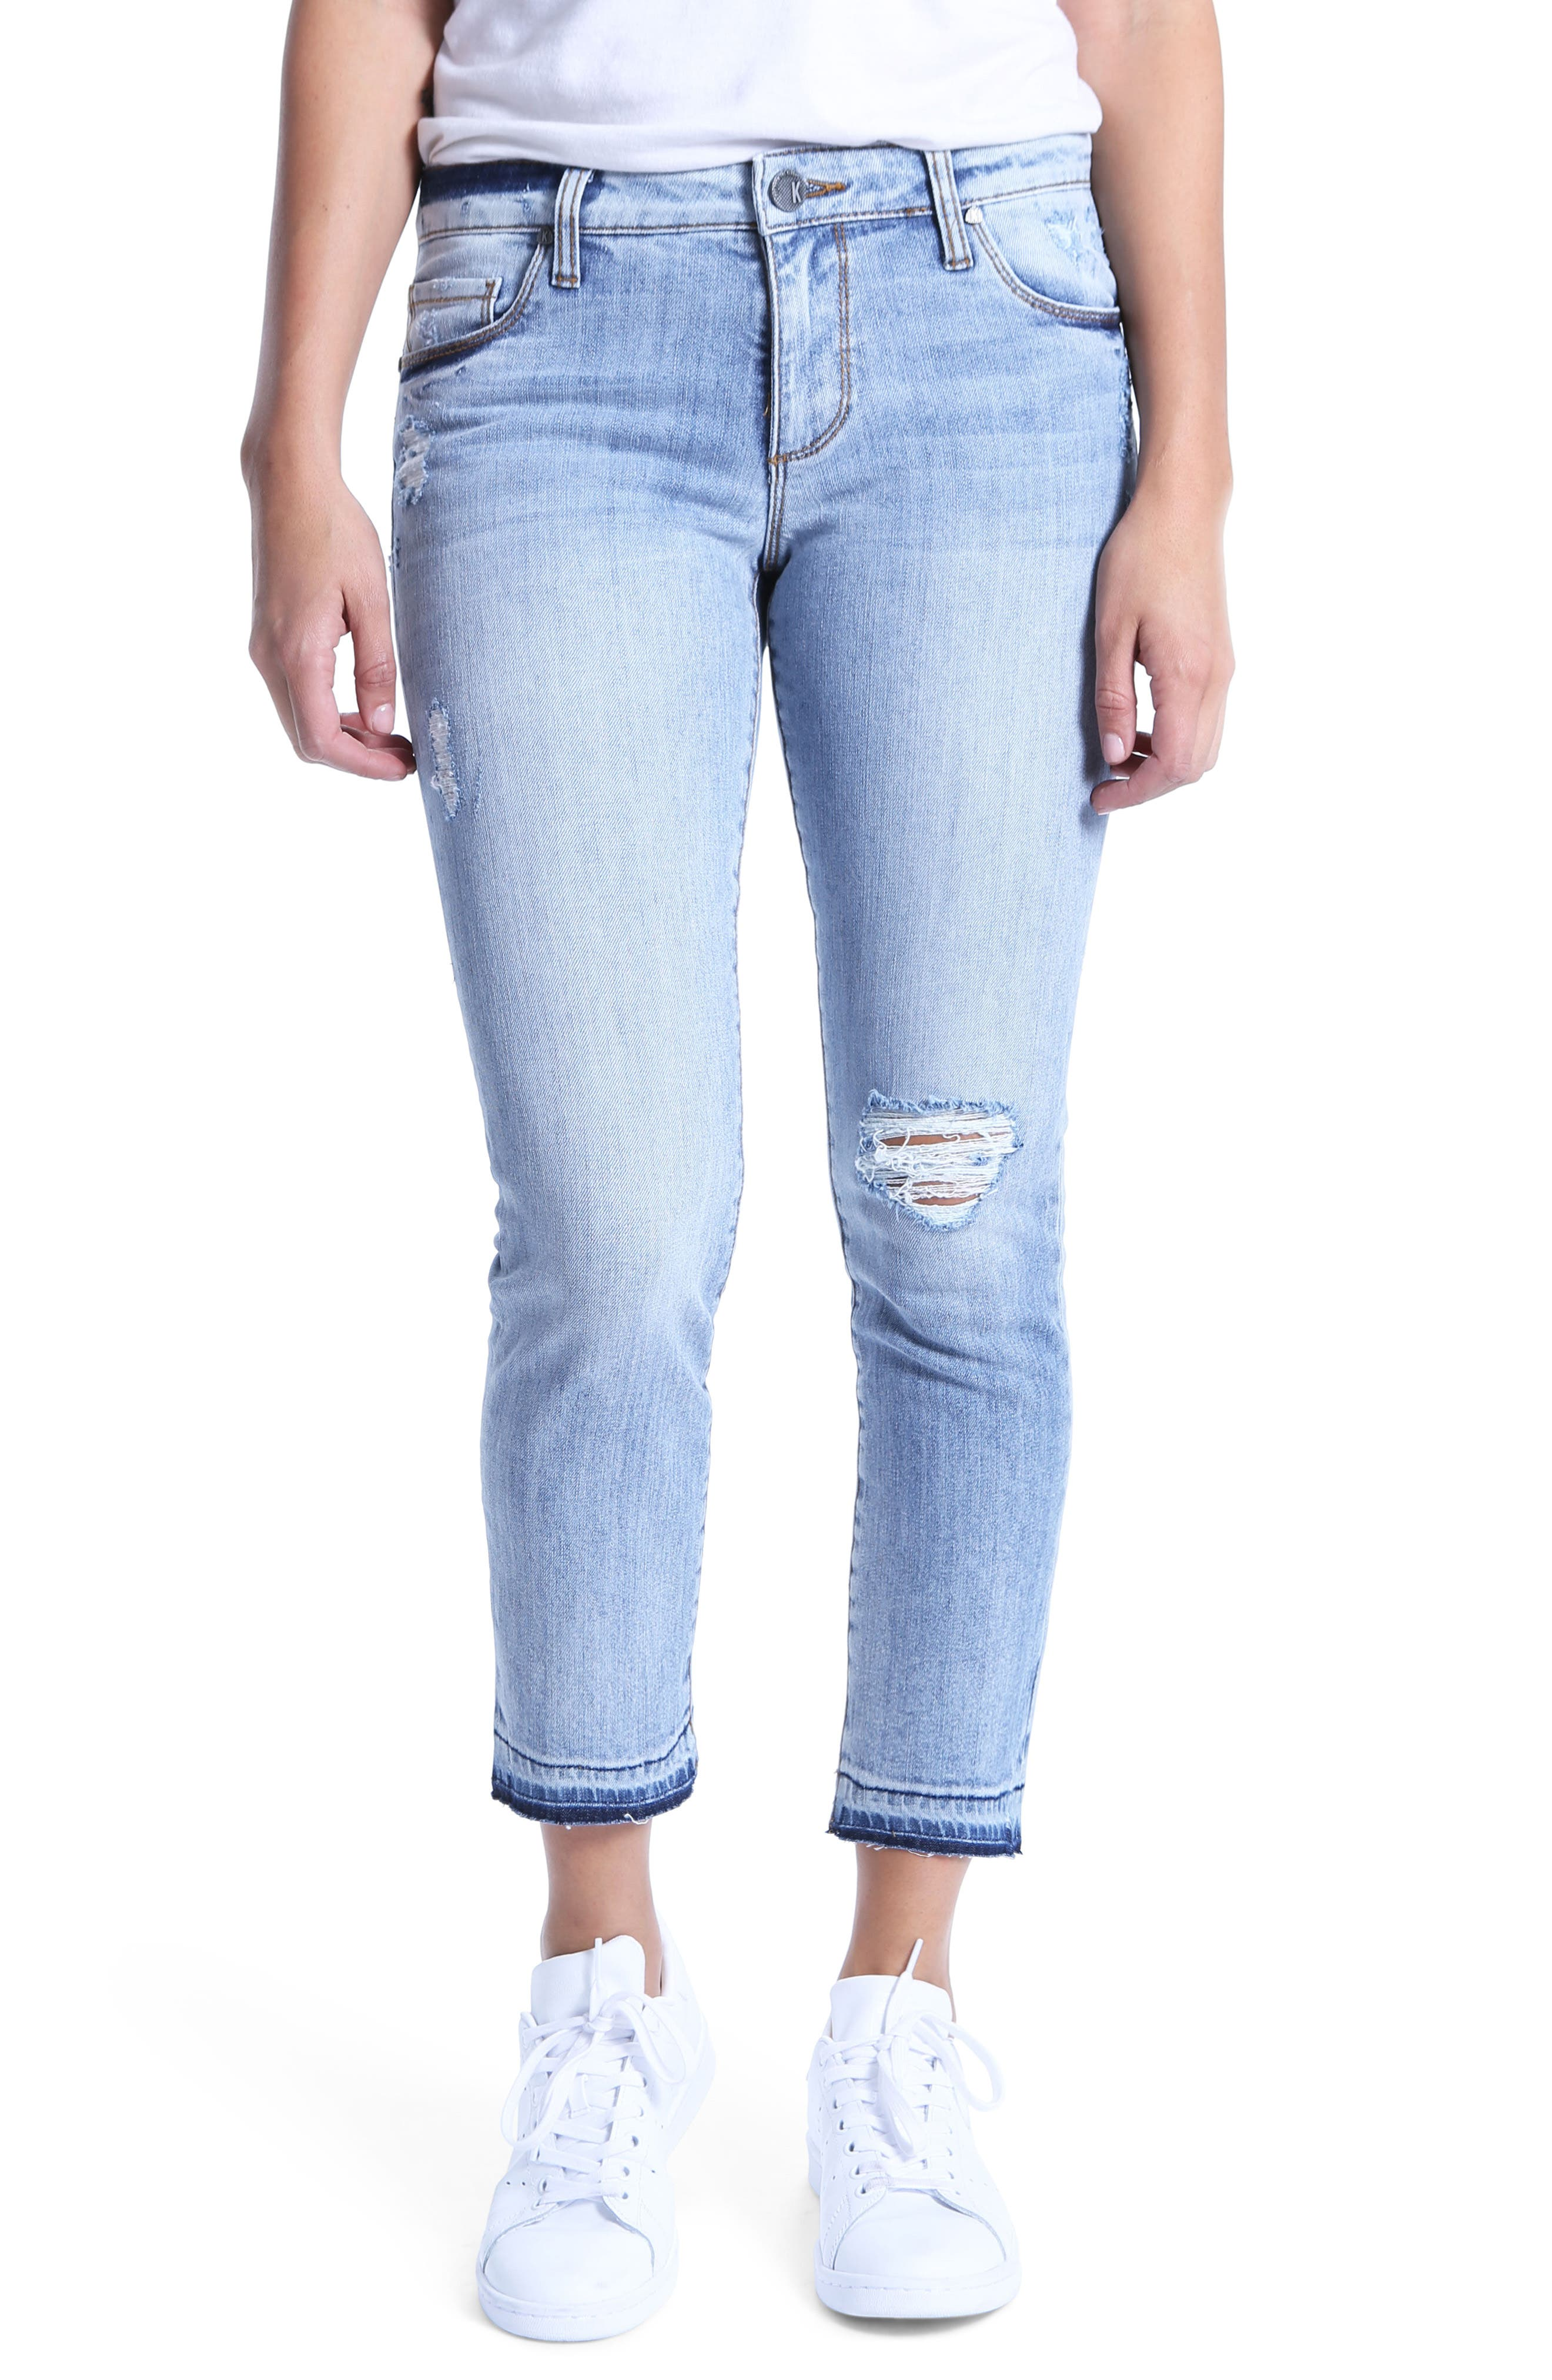 Reese Ripped Ankle Jeans,                         Main,                         color, 431